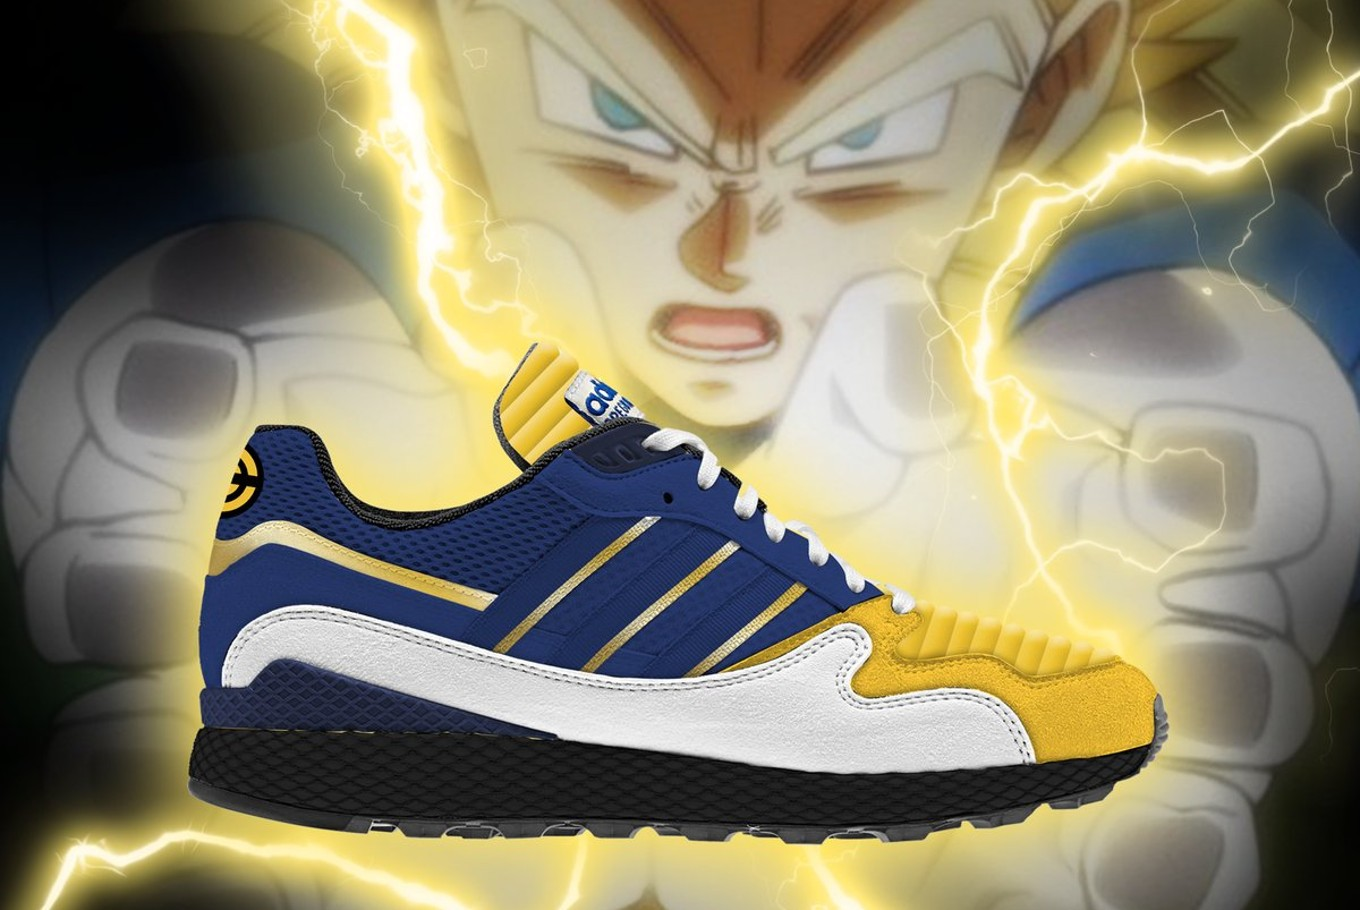 de2391242 Adidas to launch  Dragon Ball Z  sneakers this year - Lifestyle ...